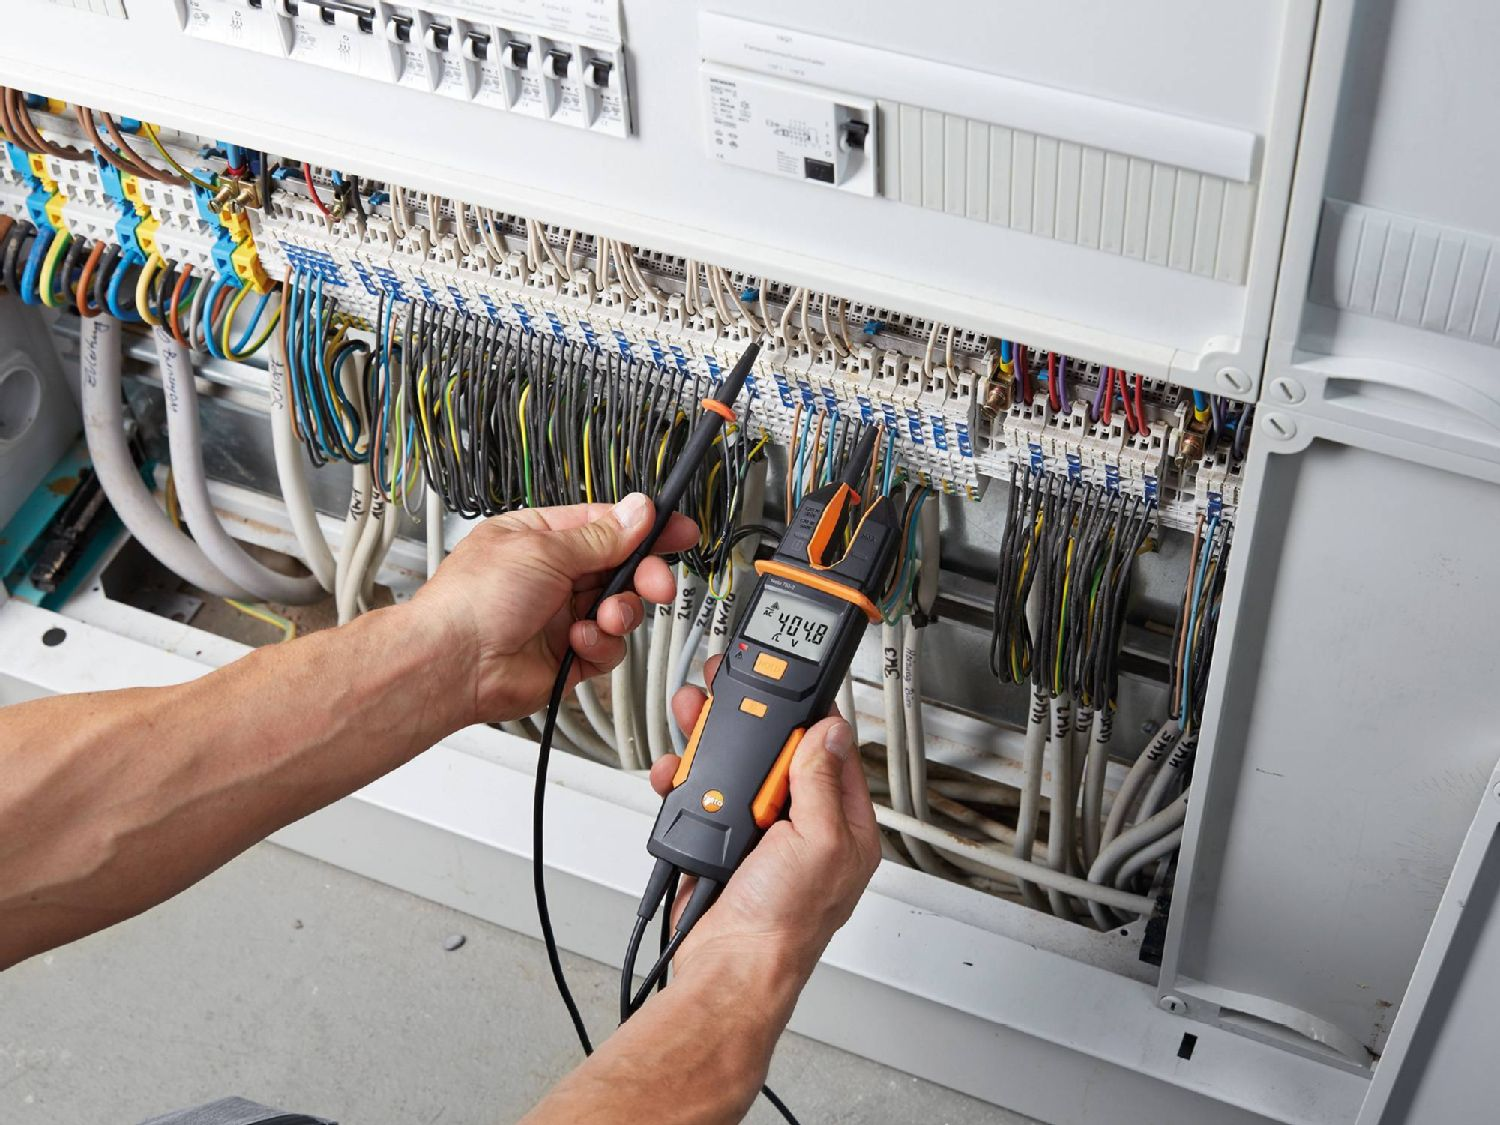 Maintenance of electrical systems with current tester